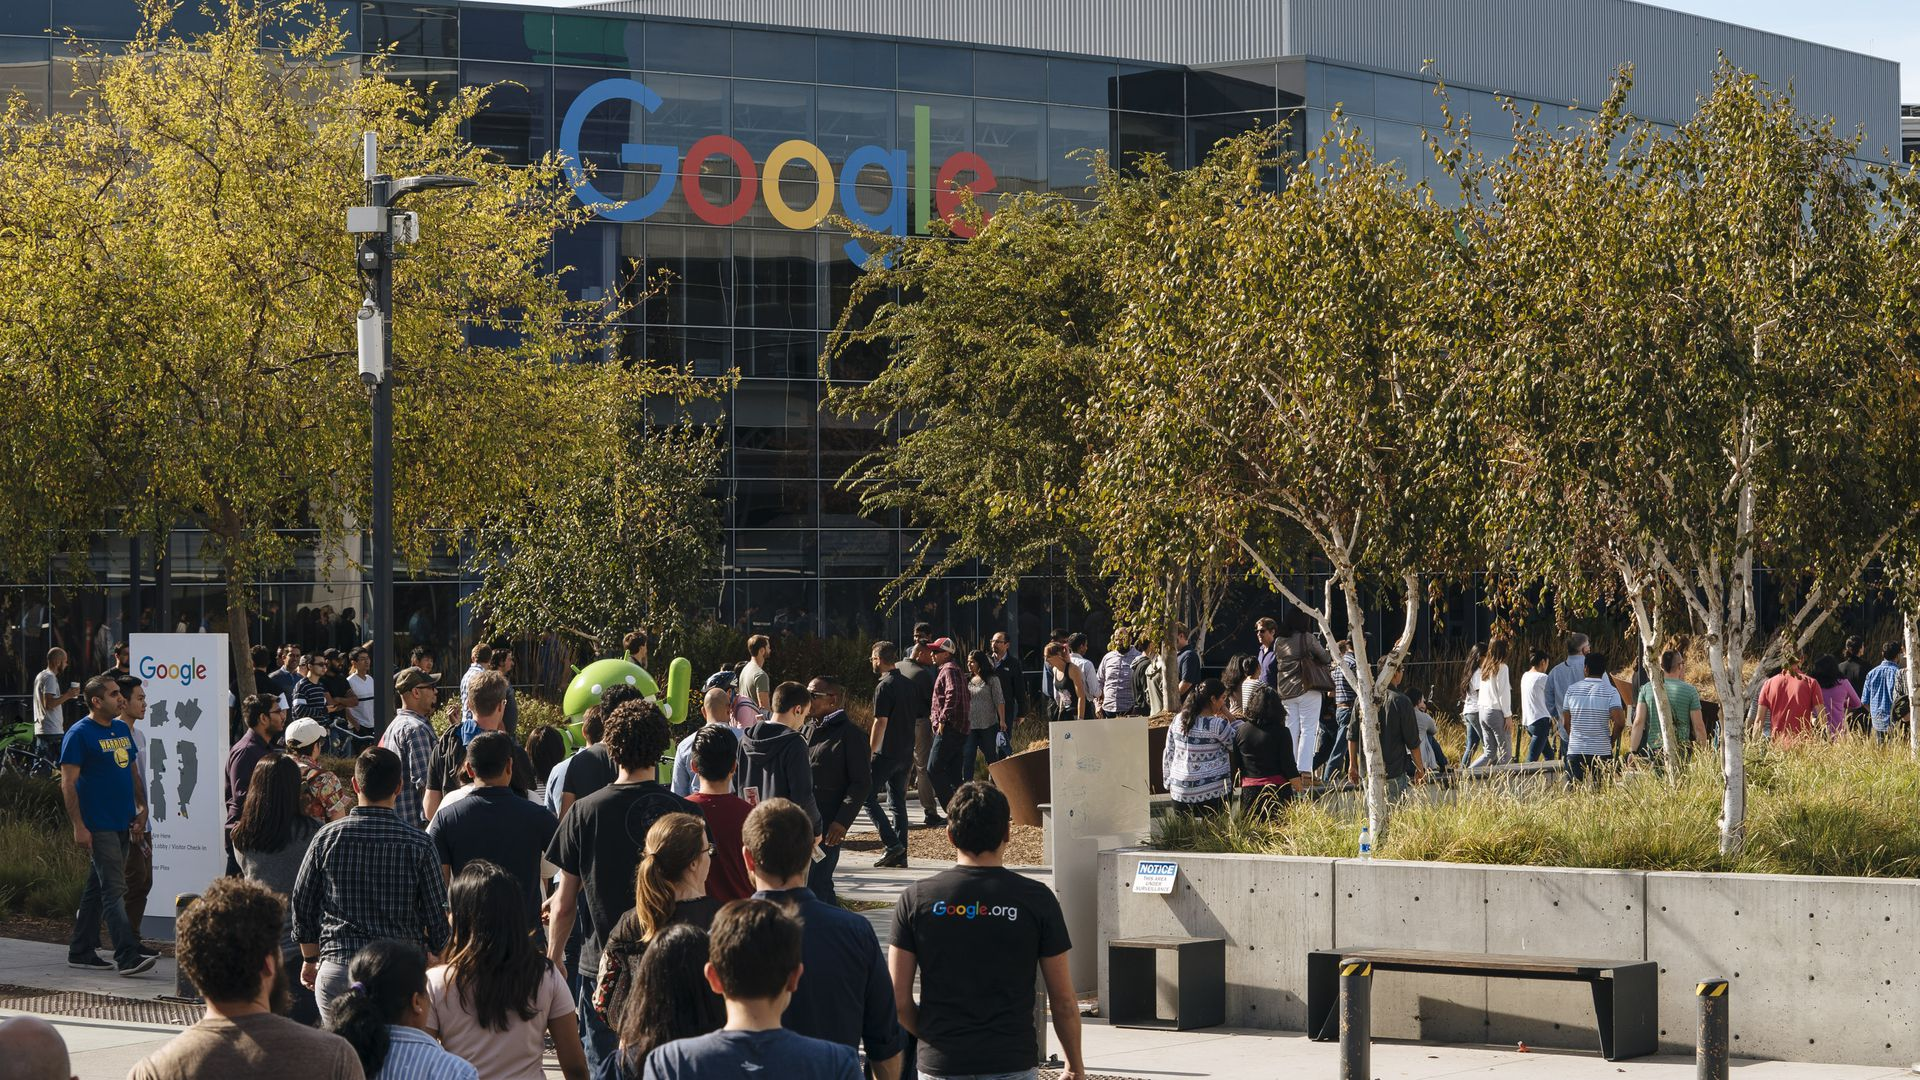 In this image, a large crowd of people walk towards a Google office during a walkout protest